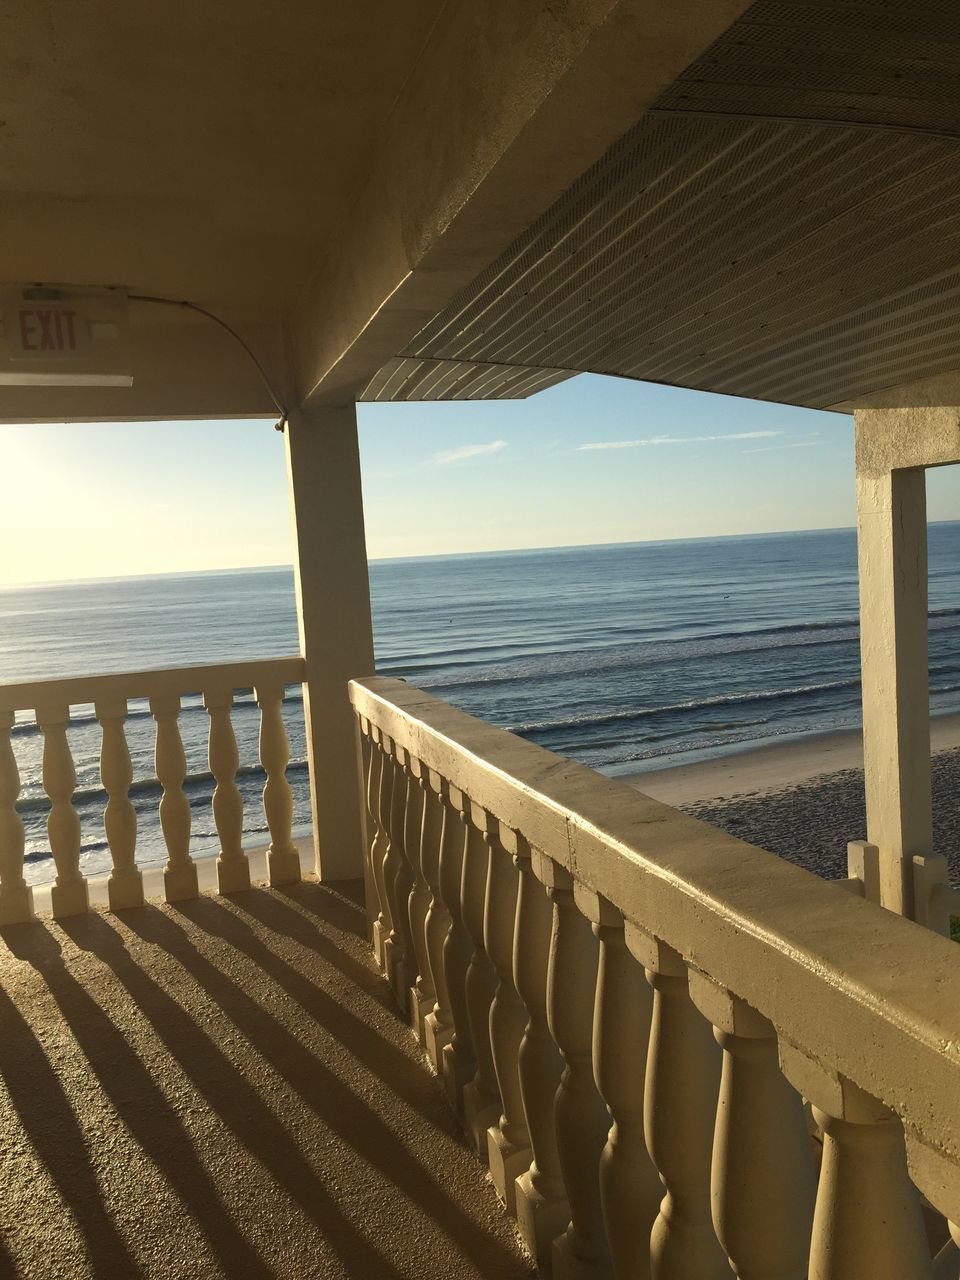 sea, horizon over water, water, railing, sunlight, beach, scenics, nature, tranquil scene, shadow, tranquility, built structure, architecture, no people, beauty in nature, day, sky, outdoors, clear sky